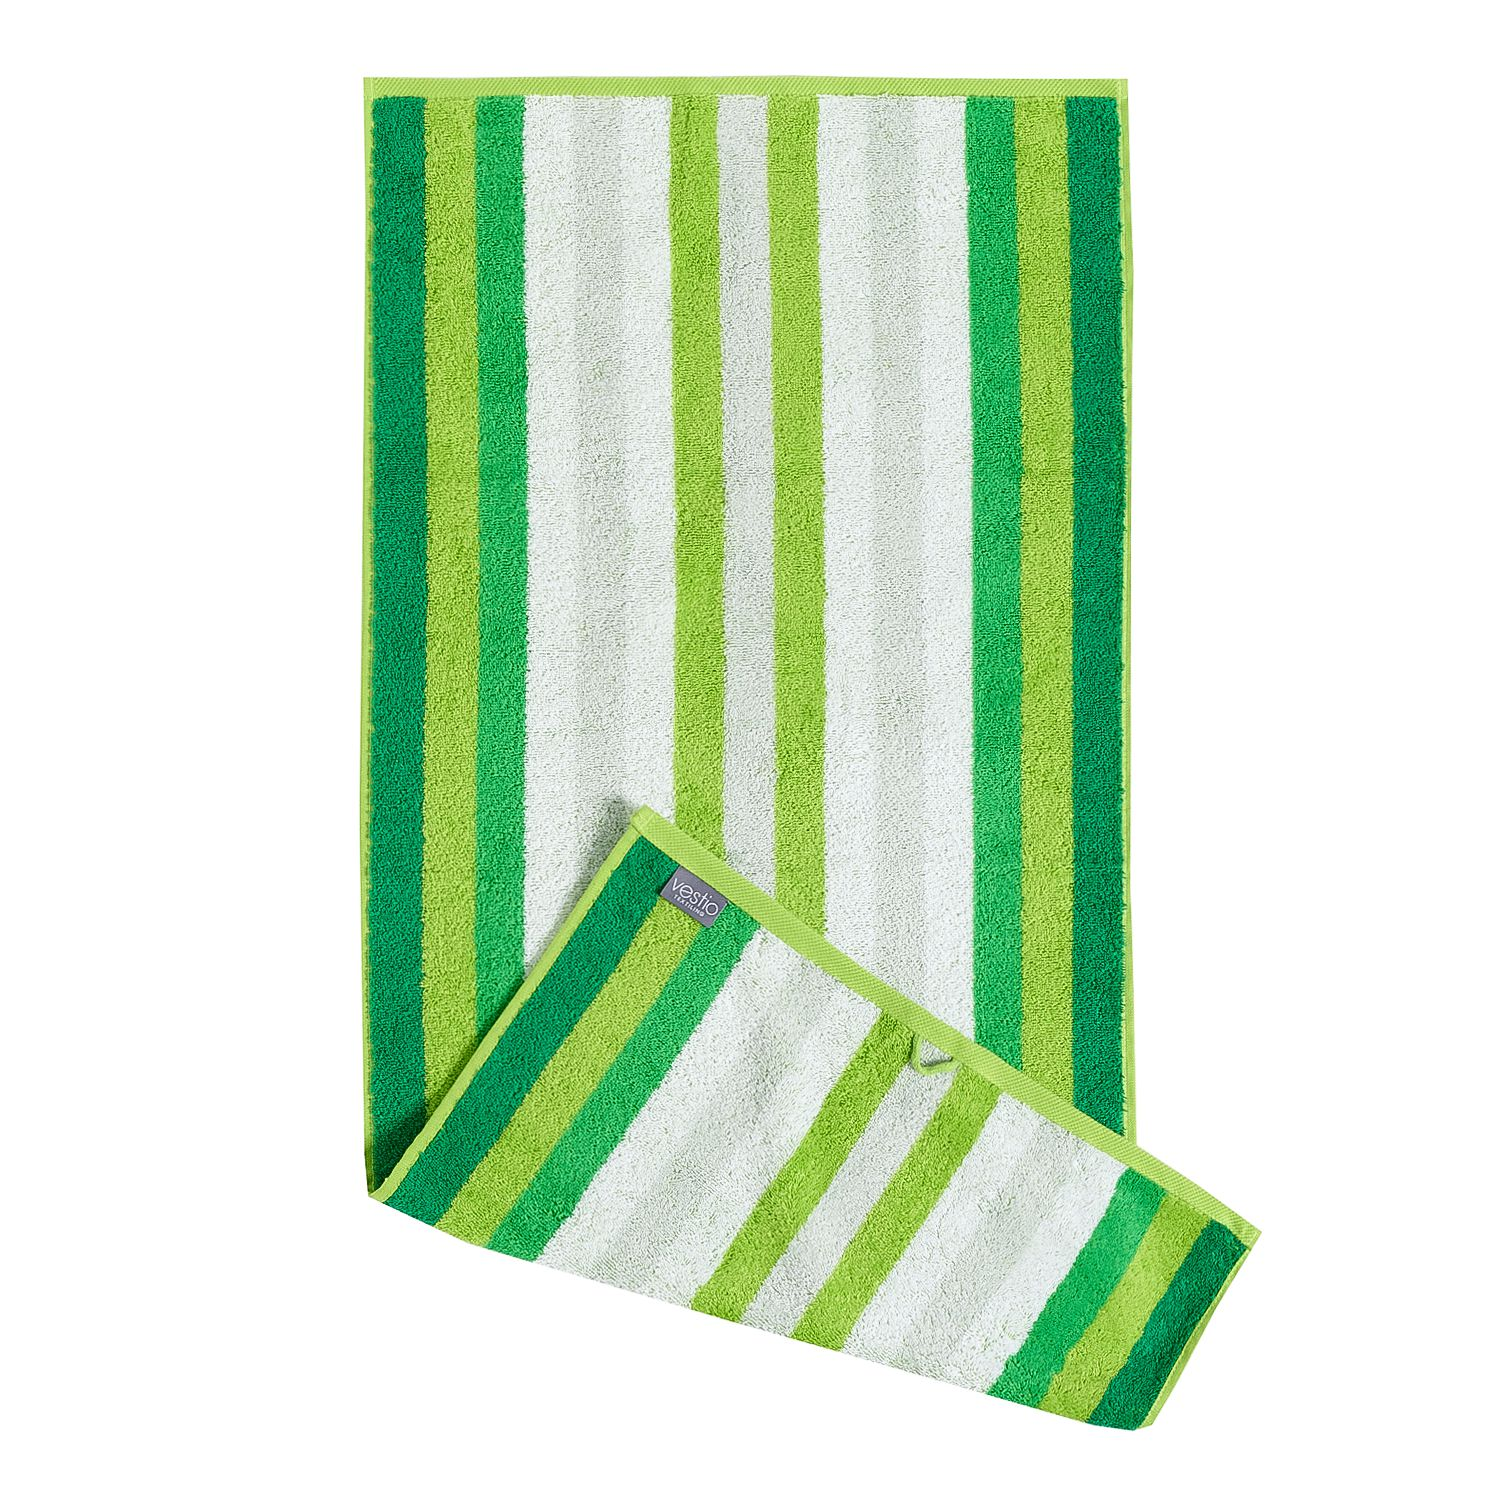 Home 24 - Serviette de toilette sisco (lot de 2) - coton - vert, vestio